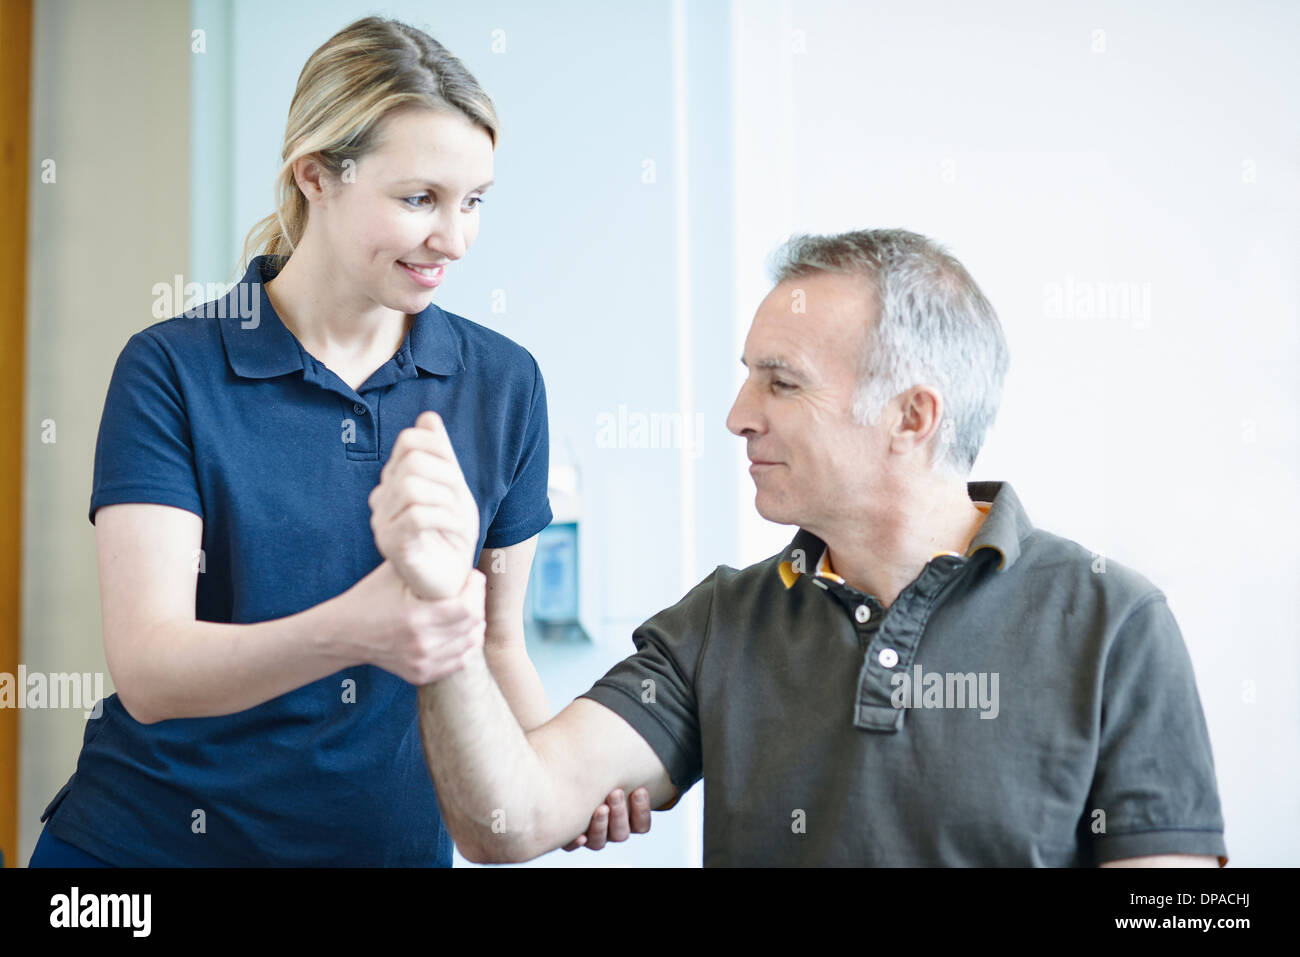 Physiotherapist helping man to do arm exercise - Stock Image